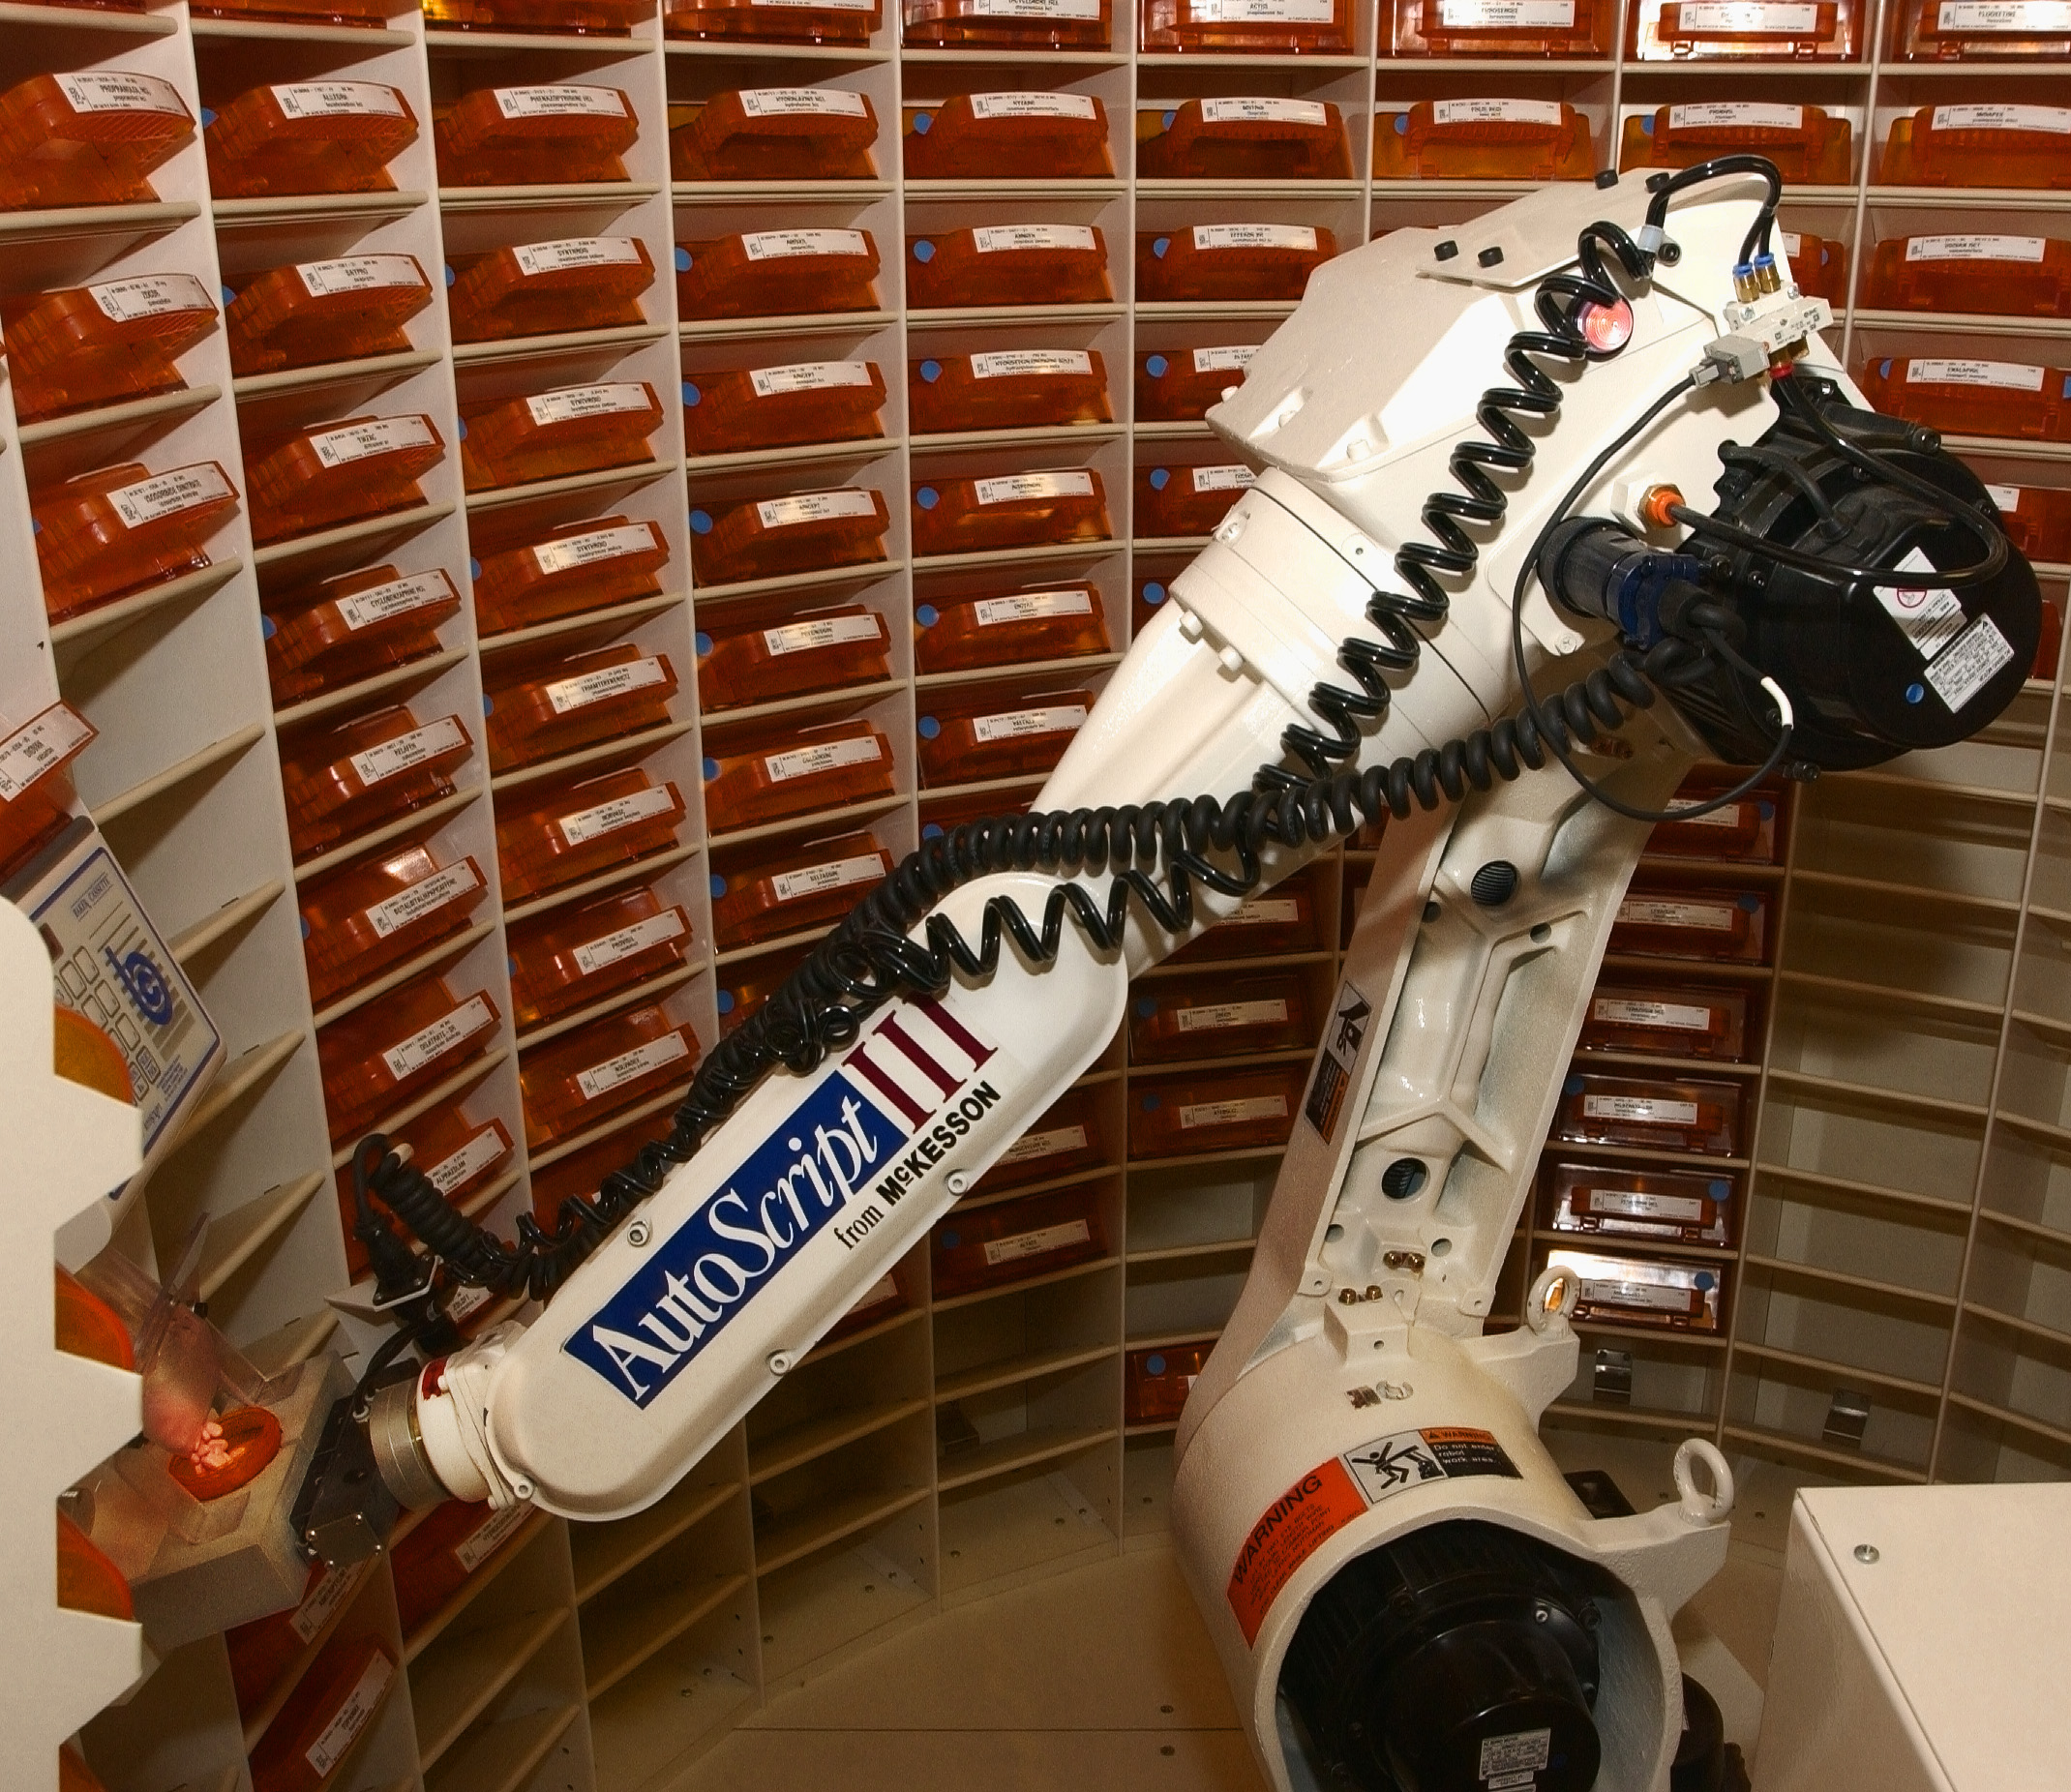 The Autoscript Robot Dispenses Medication Into A Bottle At The.